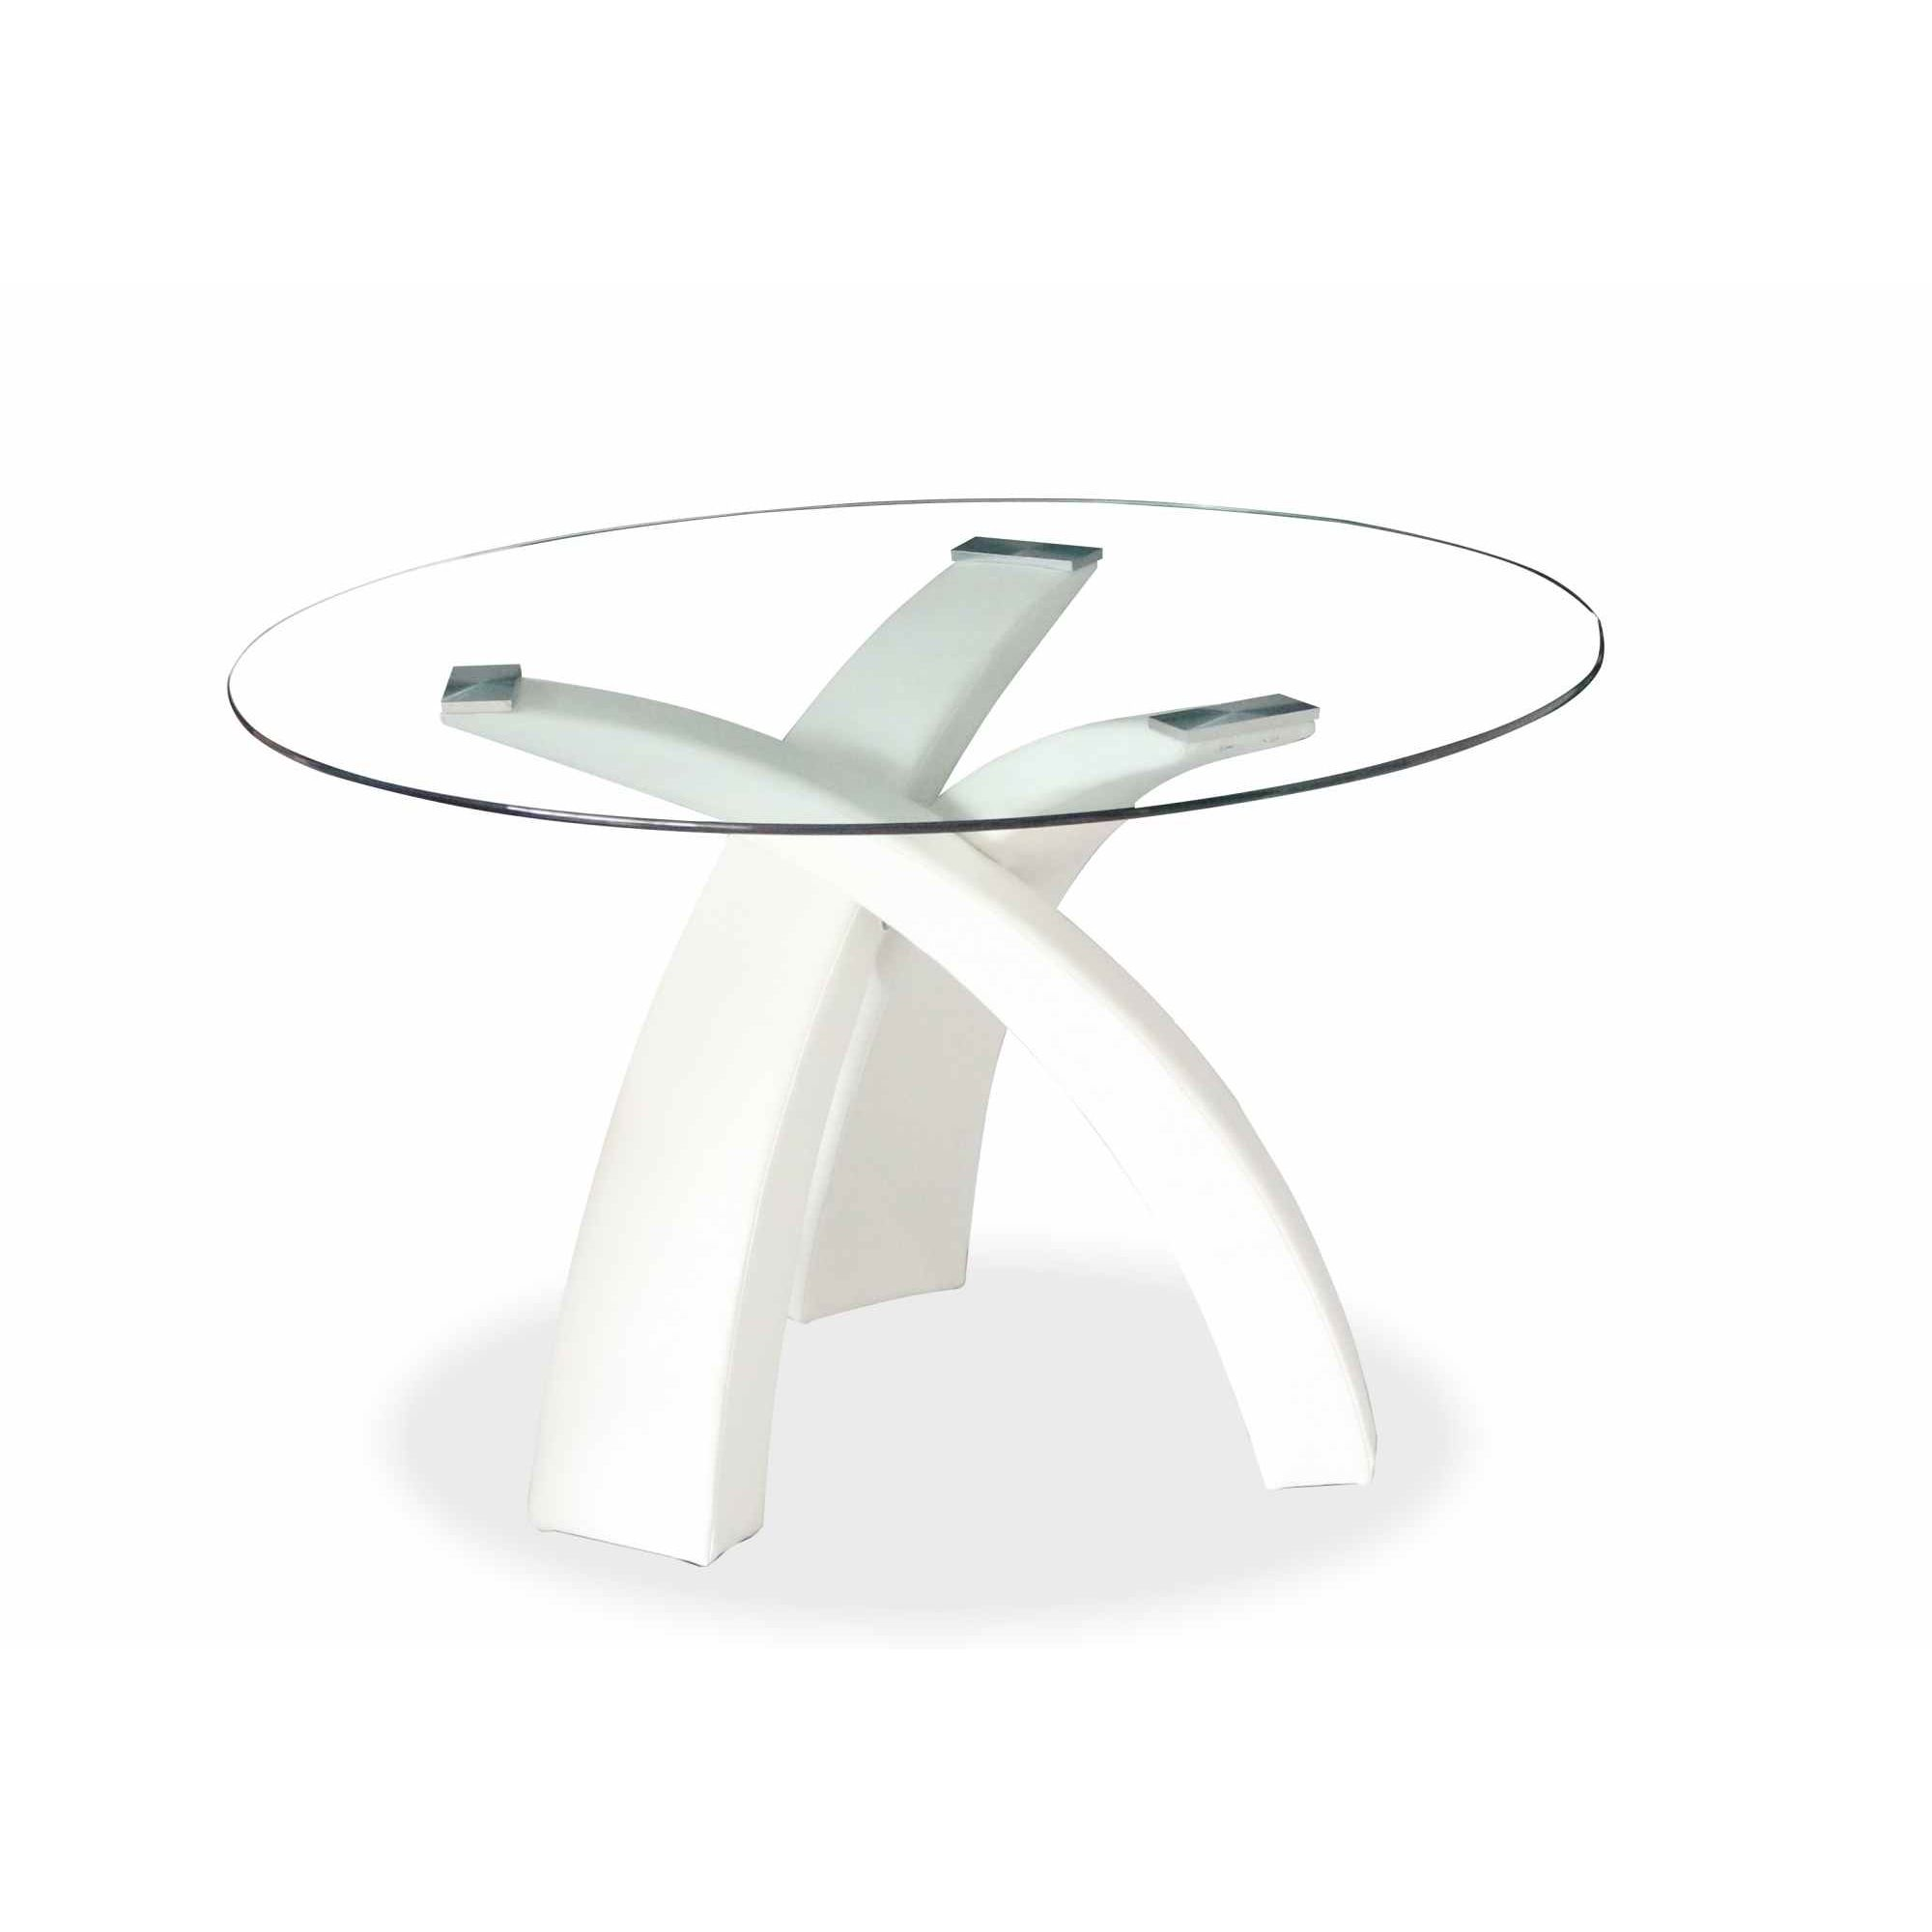 Emejing table a manger blanche ronde contemporary for Table a manger blanche extensible